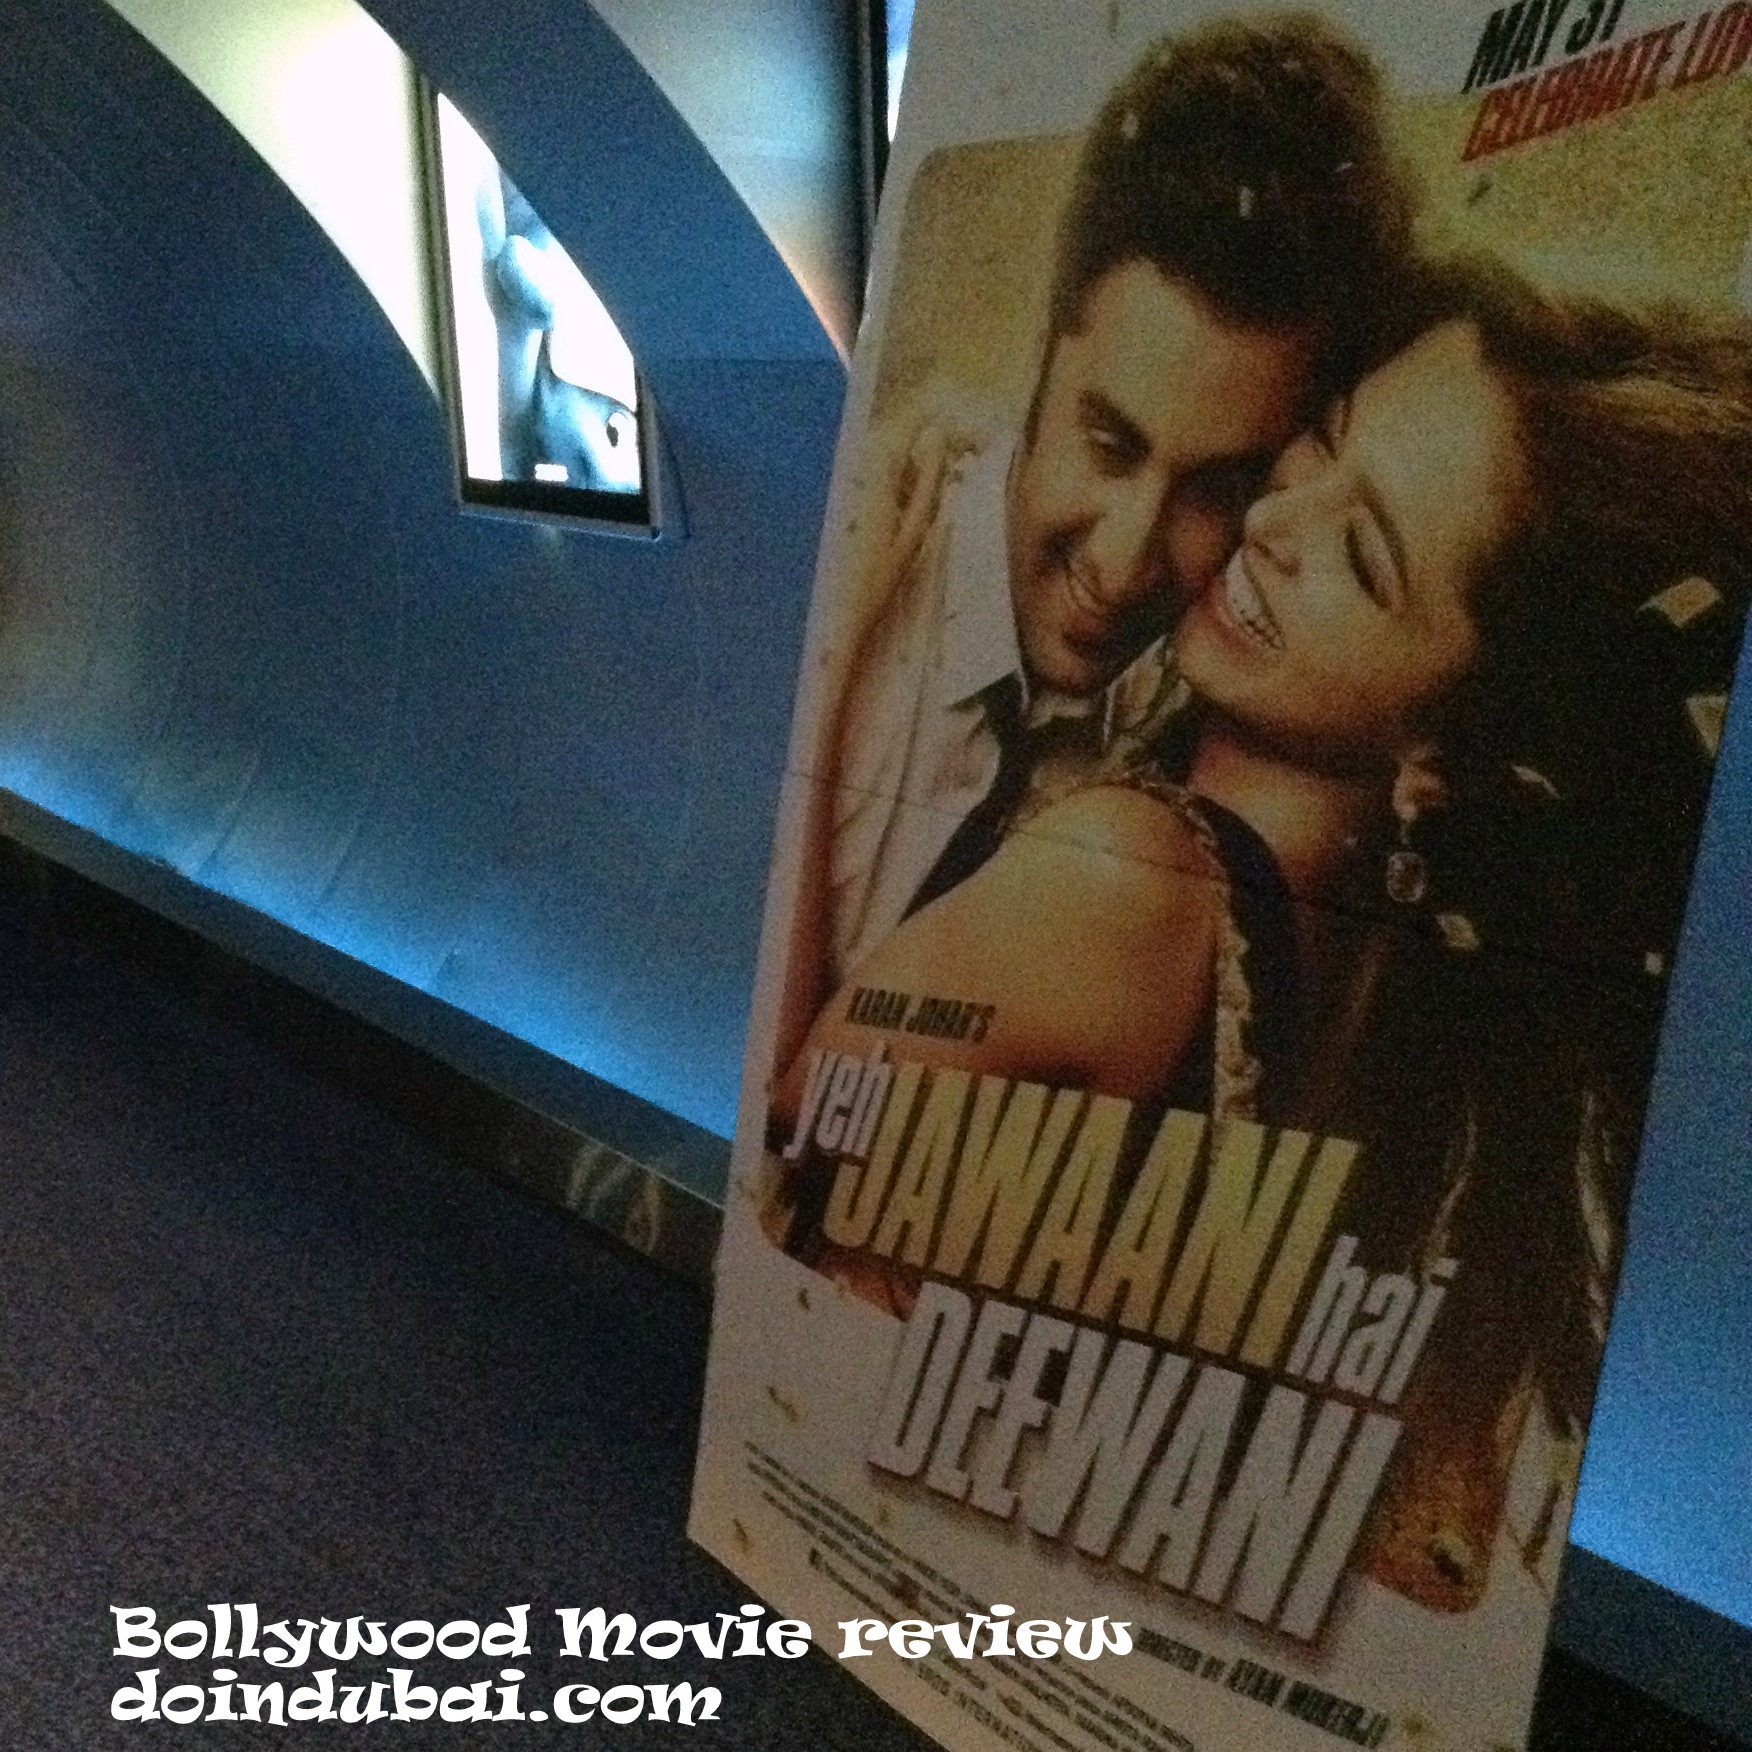 BOLLYWOOD MOVIE IN DUBAI